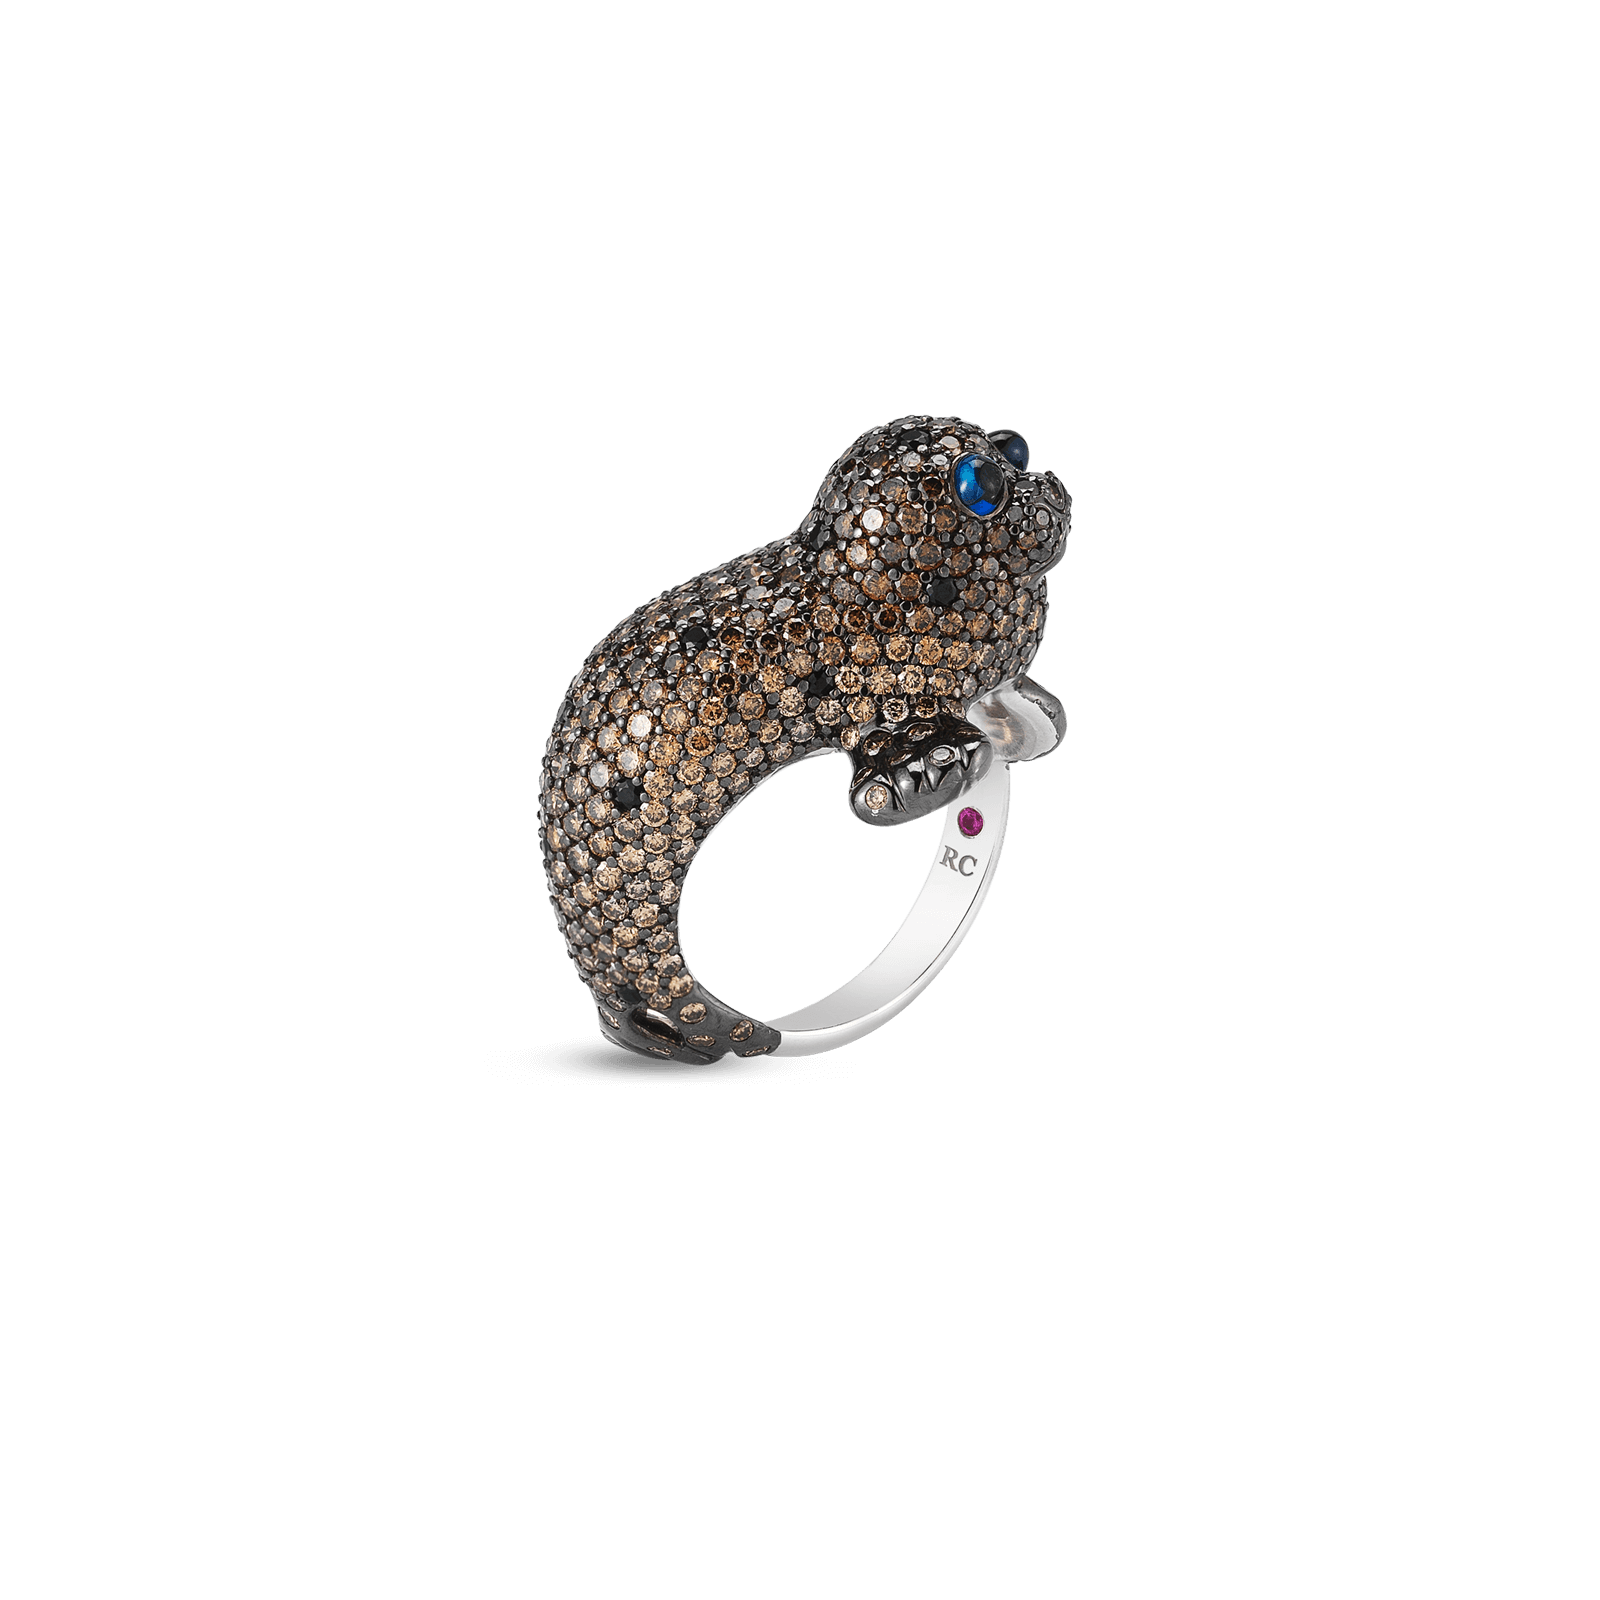 Roberto-Coin-Animalier-18K-White-Gold-Seal-Ring-with-Diamonds-and-Sapphires-378024AW65JX_A